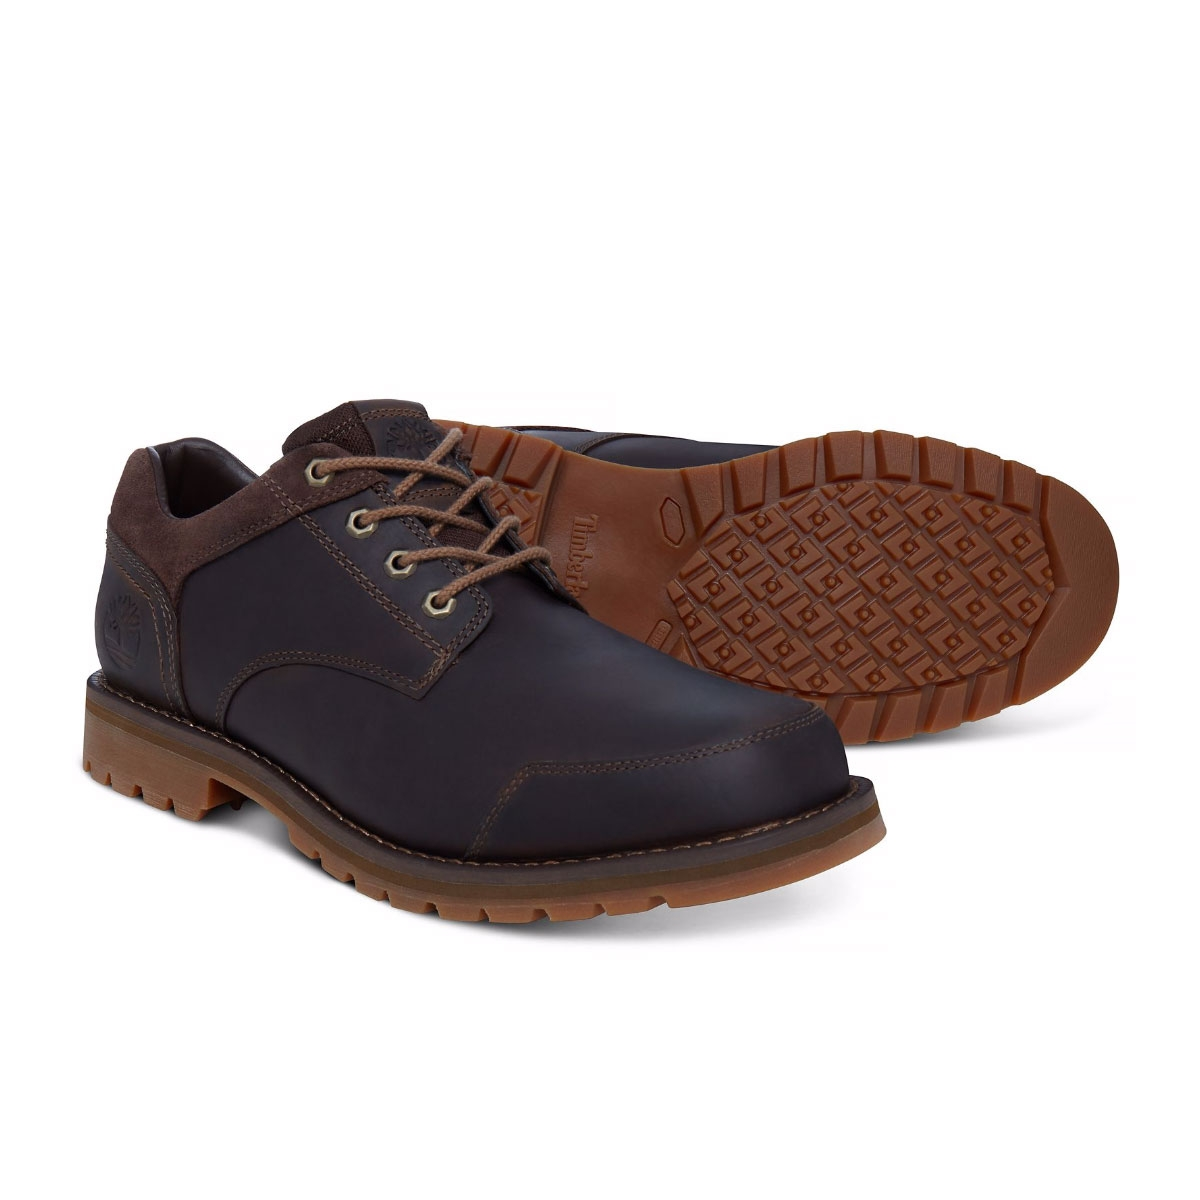 a2ff1855cca6 Image of Timberland Earthkeepers Larchmont Oxford Shoe (Men s) - Gaucho  Saddleback (Dark Brown